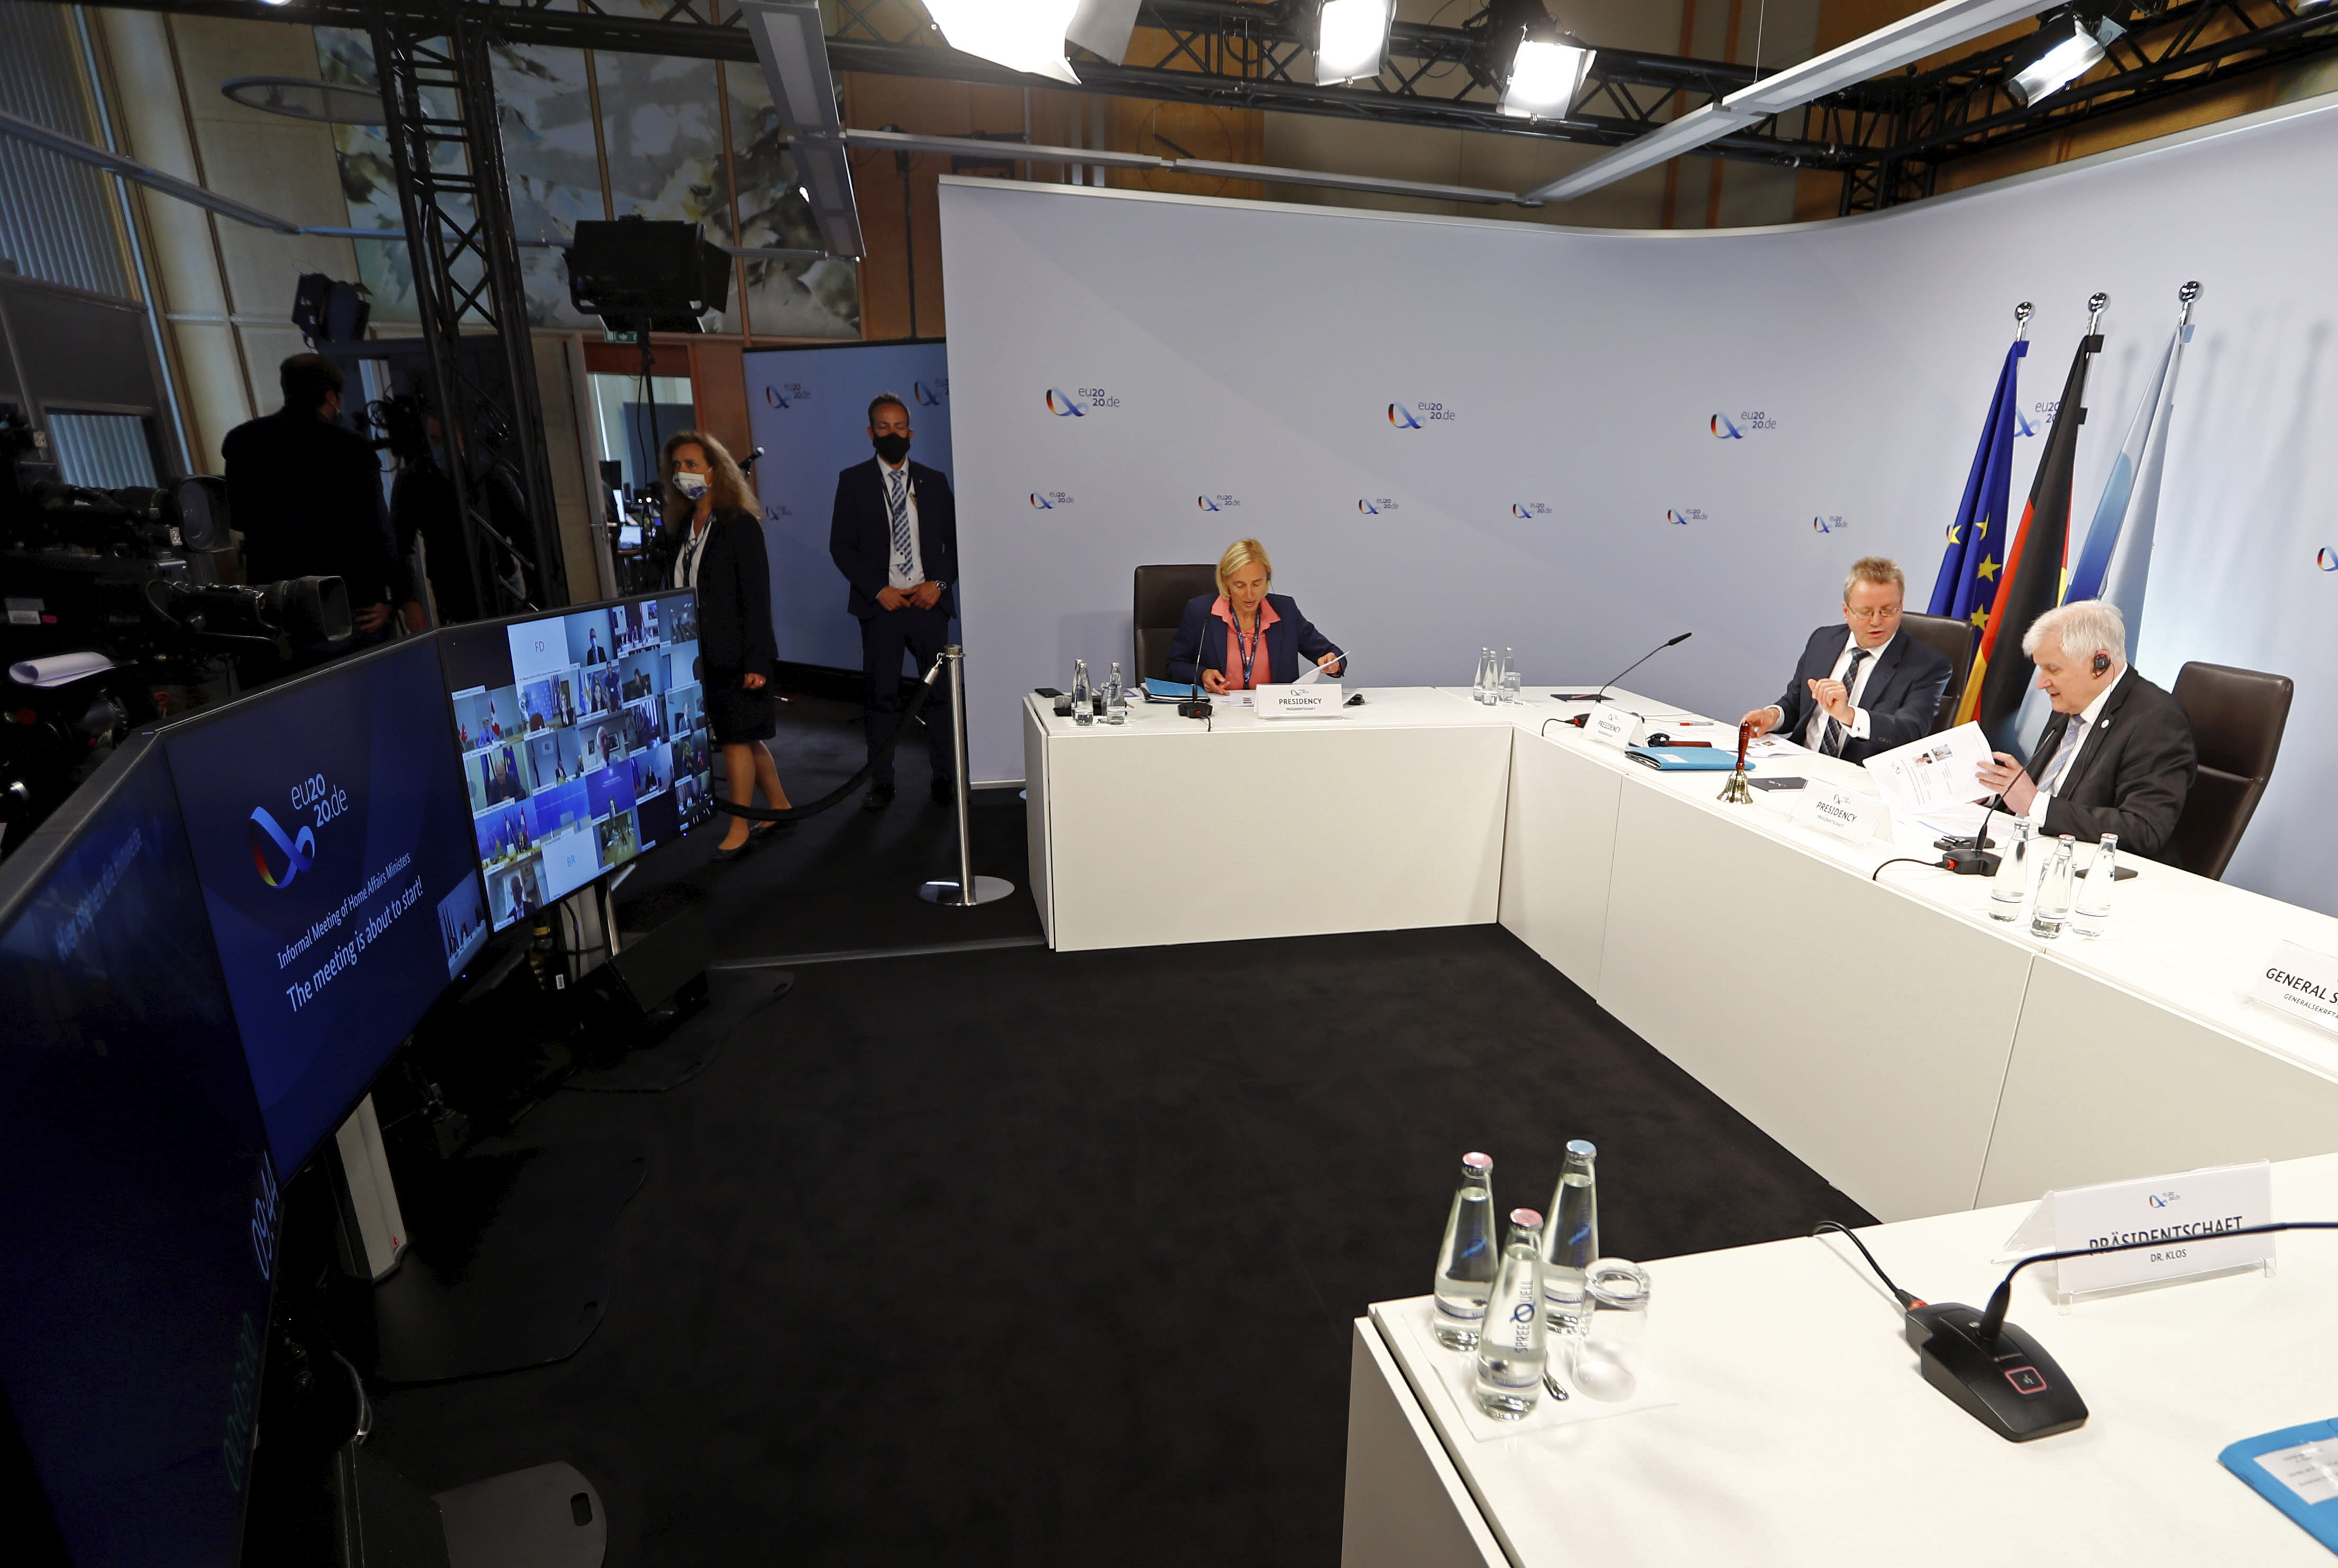 Federal Minister of the Interior Horst Seehofer (r, CSU) is hosting a virtual meeting with the European justice and interior ministers in the context of the German EU Council Presidency due to the Corona crisis in Berlin, Germany, Tuesday, July 7, 2020. (Fabrizio Bensch/Pool via AP)